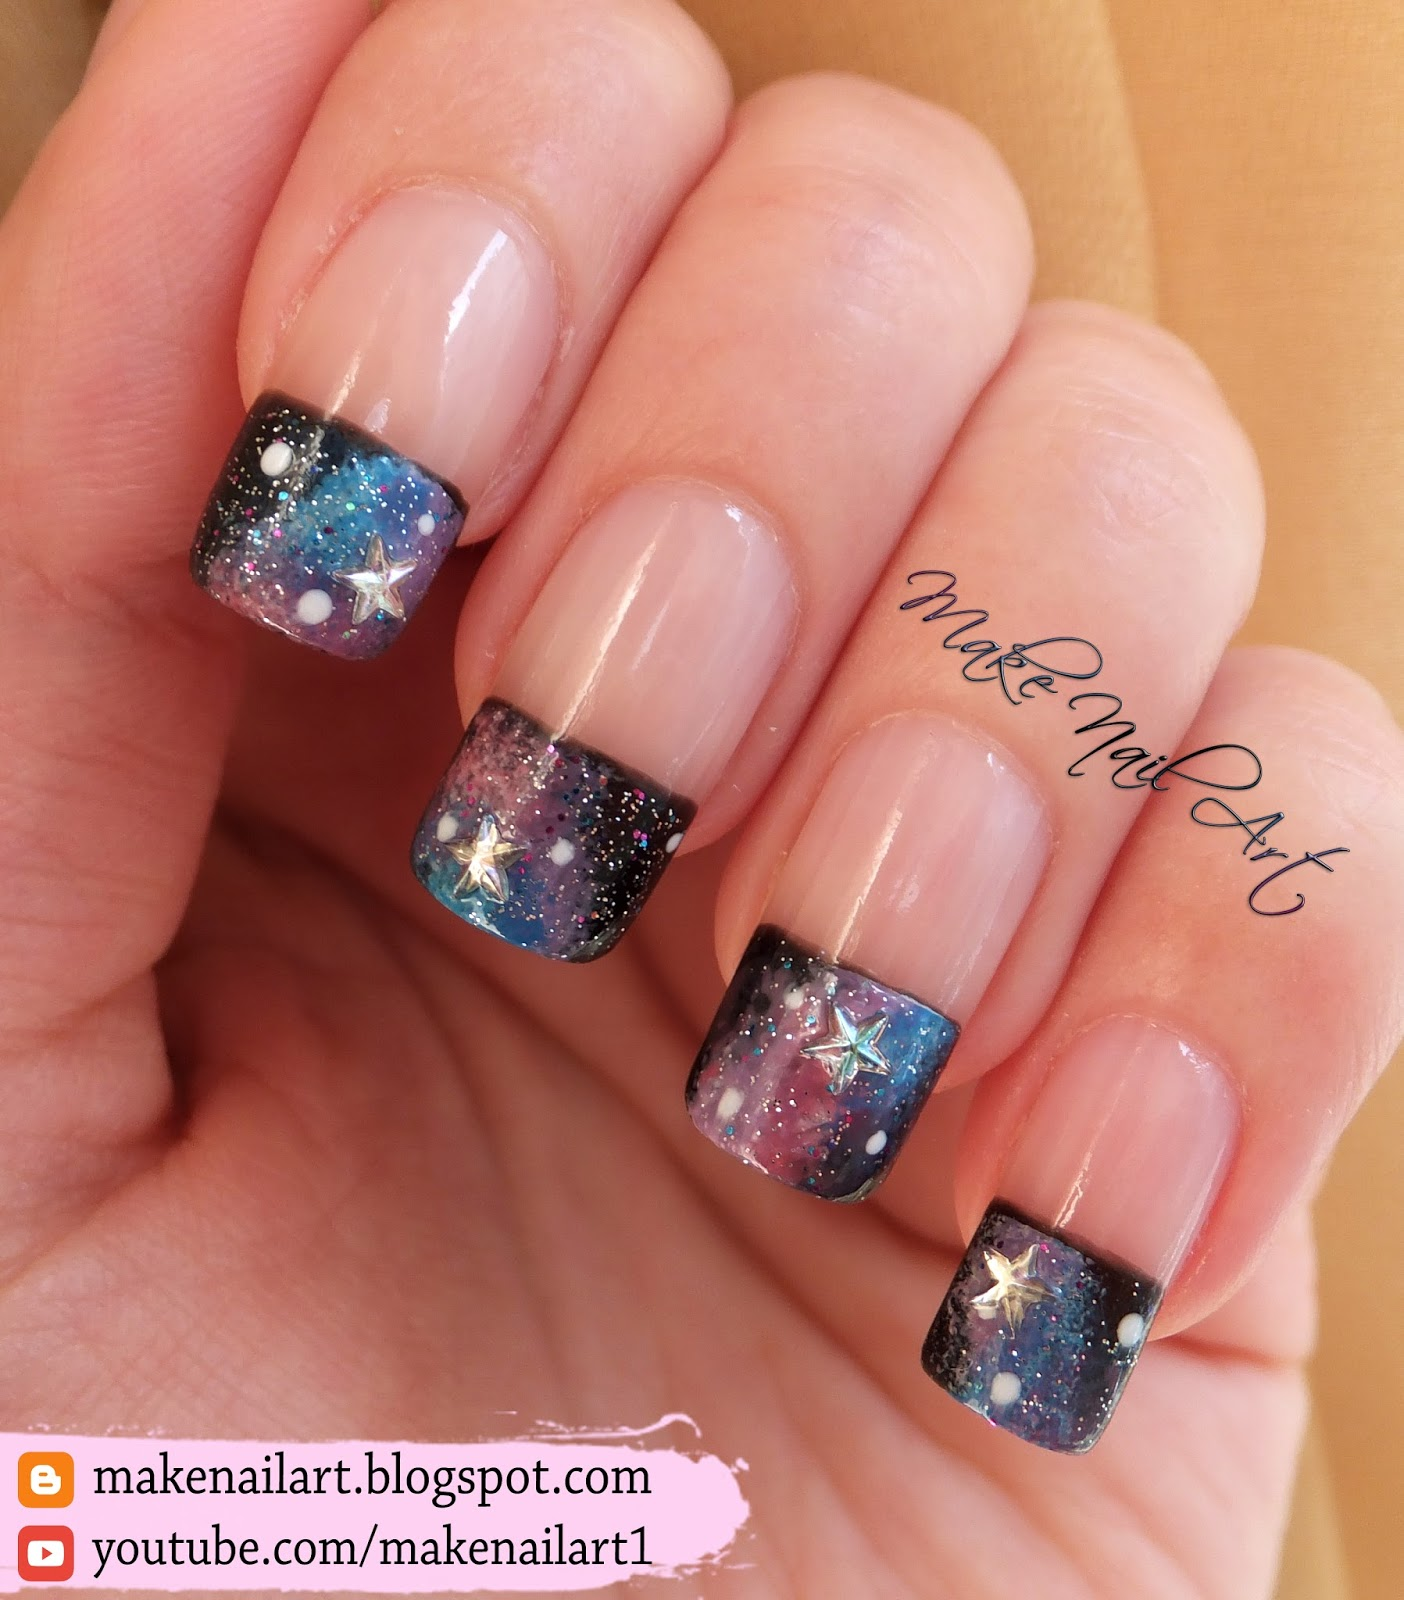 Make Nail Art: Galaxy French Manicure Nail Art Design Tutorial